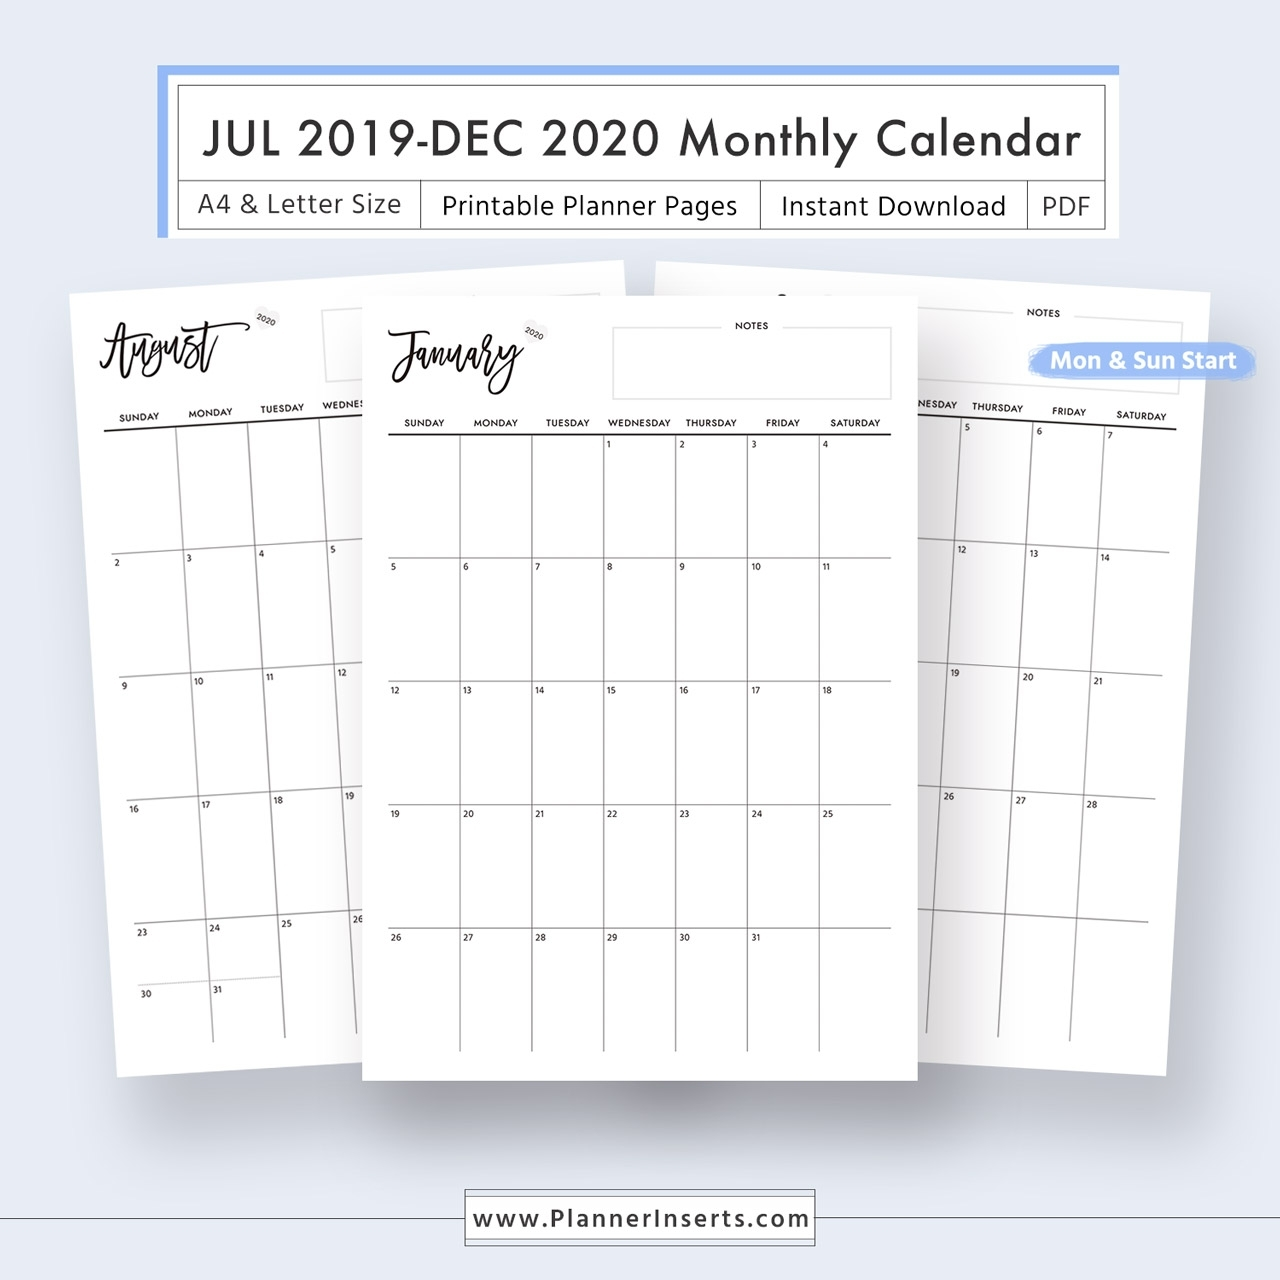 2019-2020 Dated Monthly Calendar For Unlimited Instant Download - Digital  Printable Planner Inserts In .pdf Format - A4 & Letter Size - Monthly